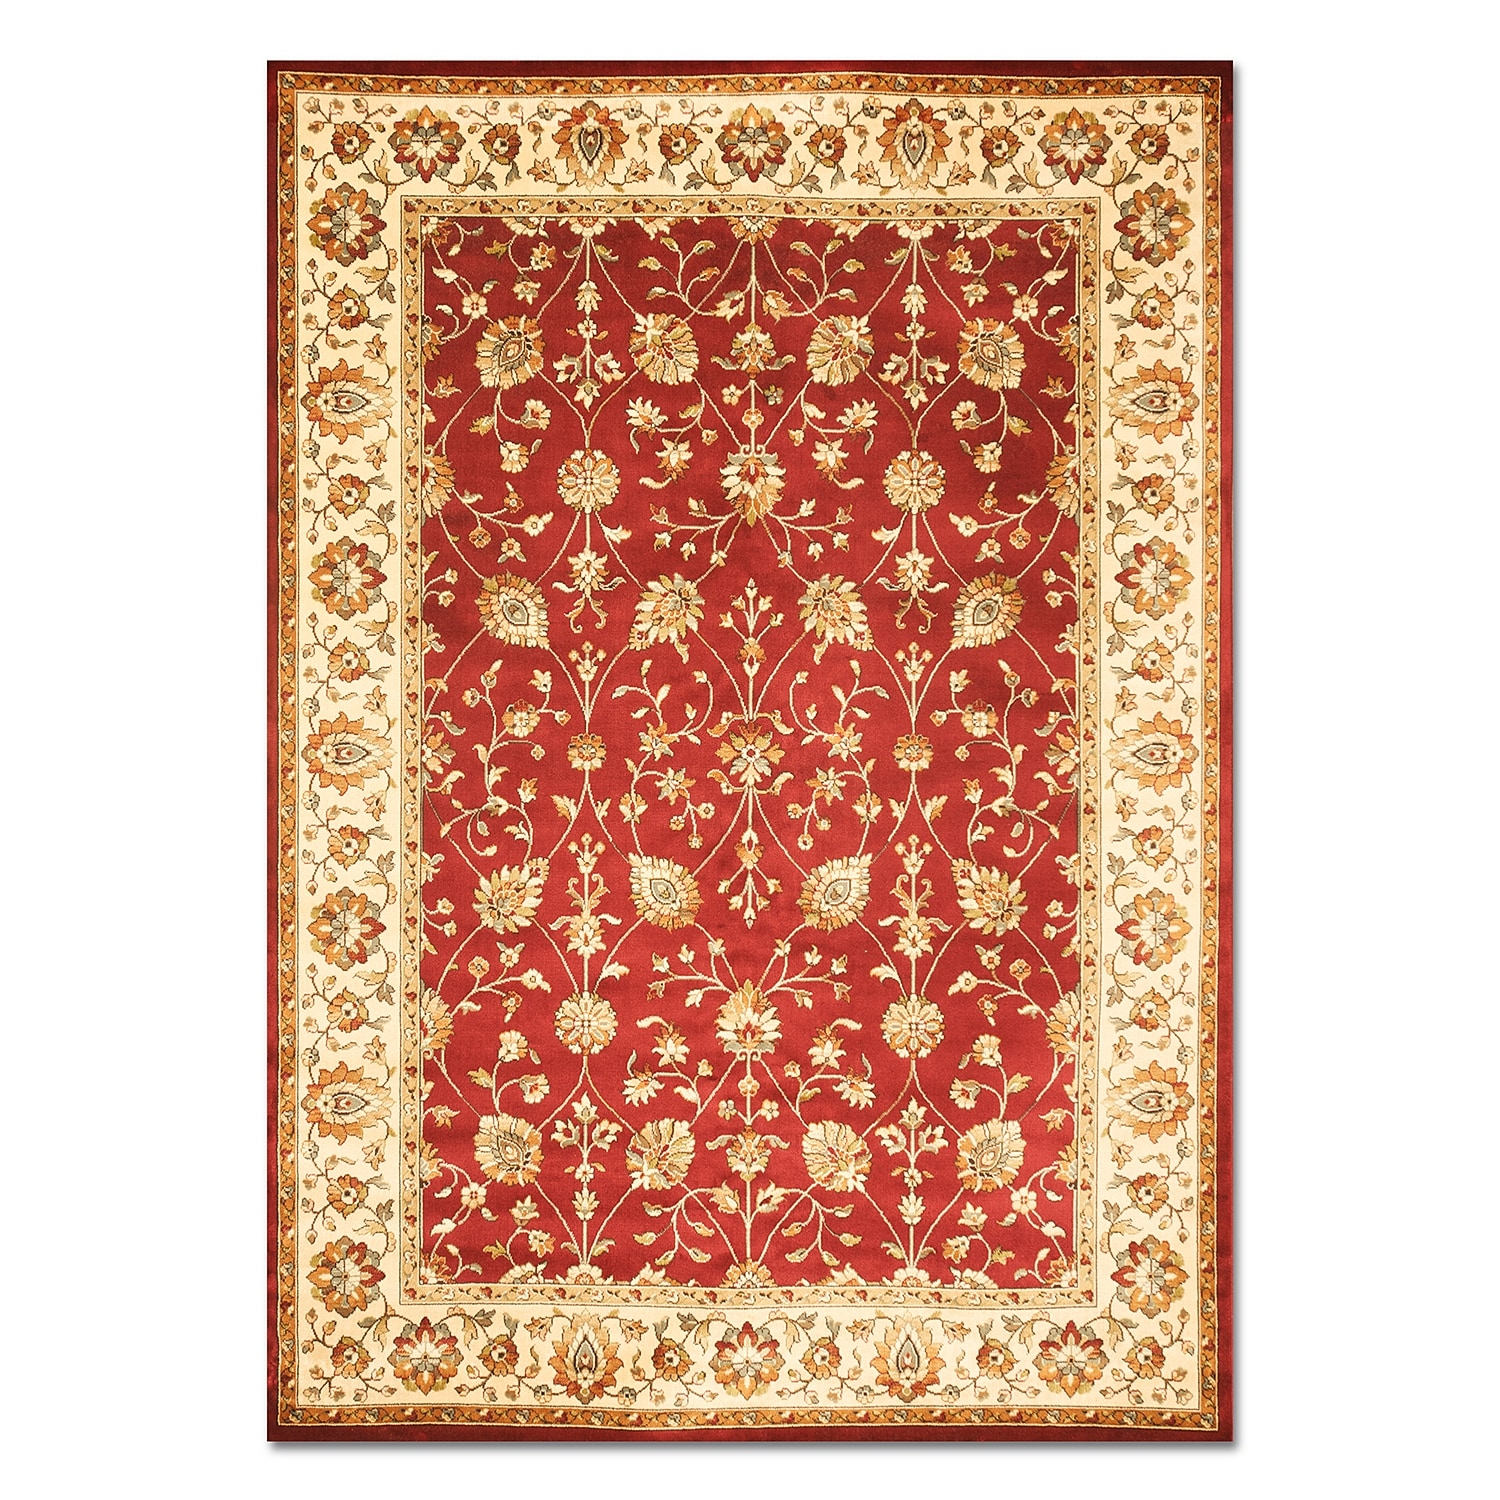 sonoma noble 8 39 x 10 39 area rug red and beige value city furniture. Black Bedroom Furniture Sets. Home Design Ideas